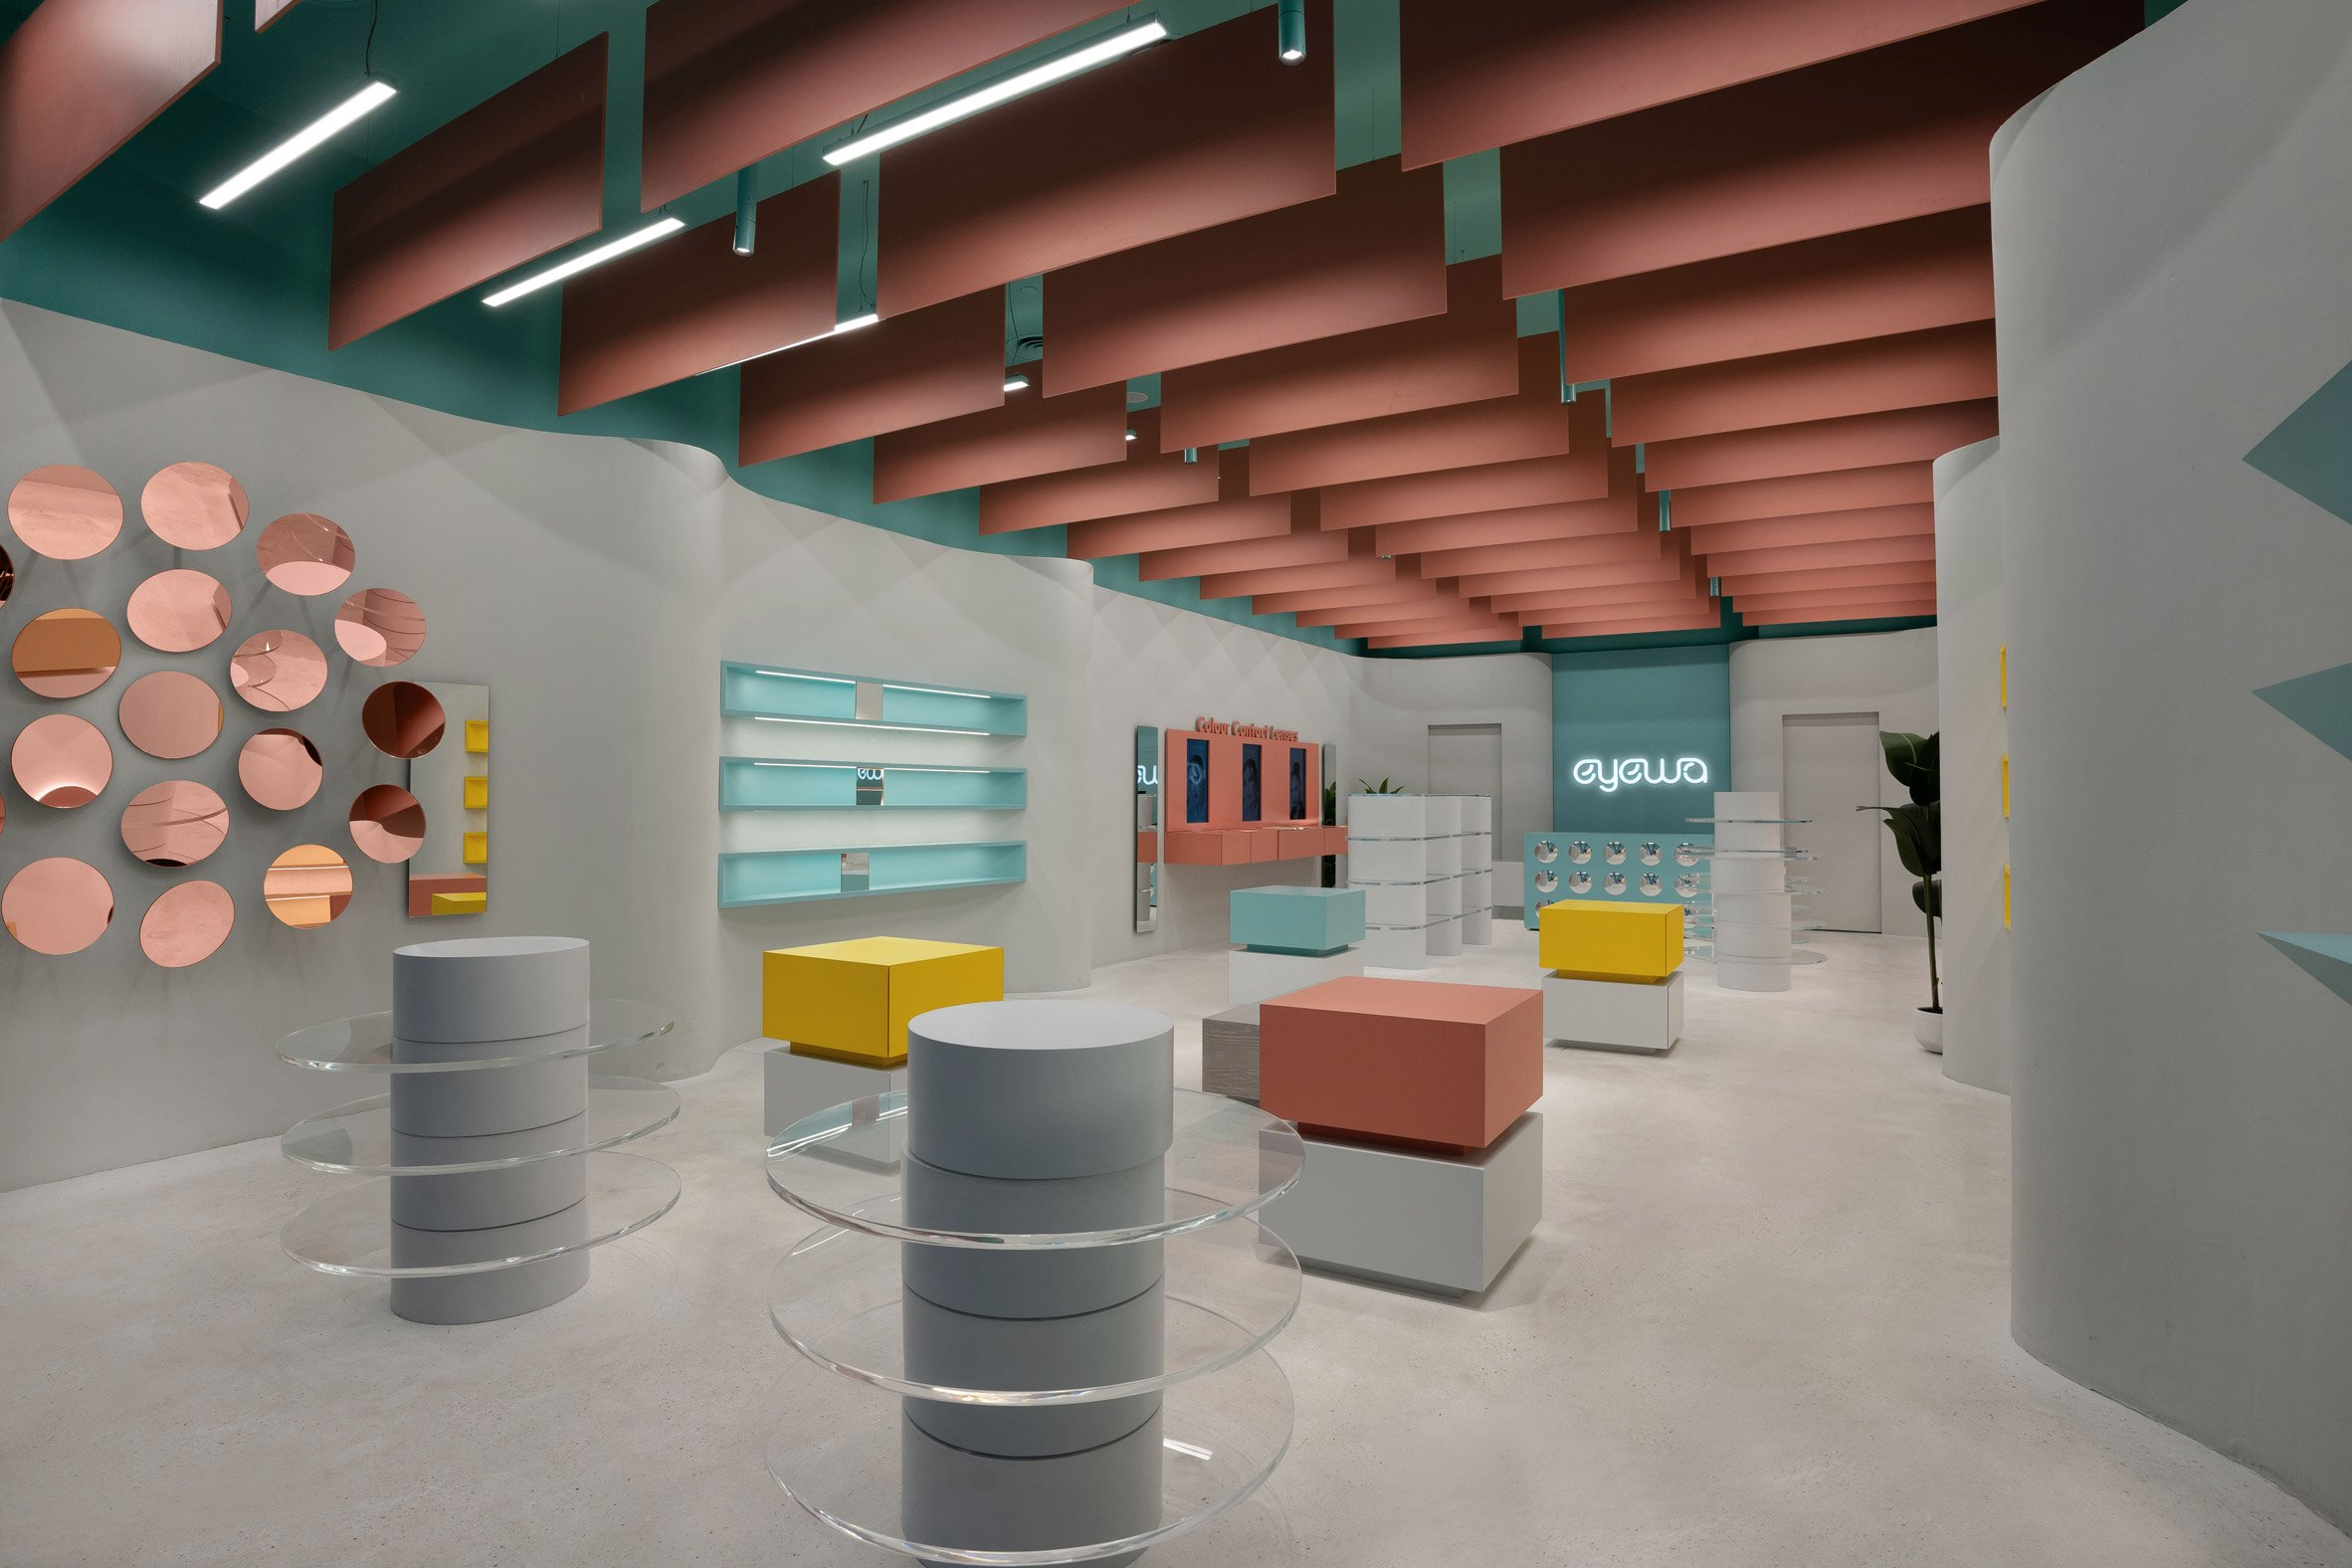 Cuboid and cylindrical display plinths in store design by Pierre Brocas and Nada Oudghiri